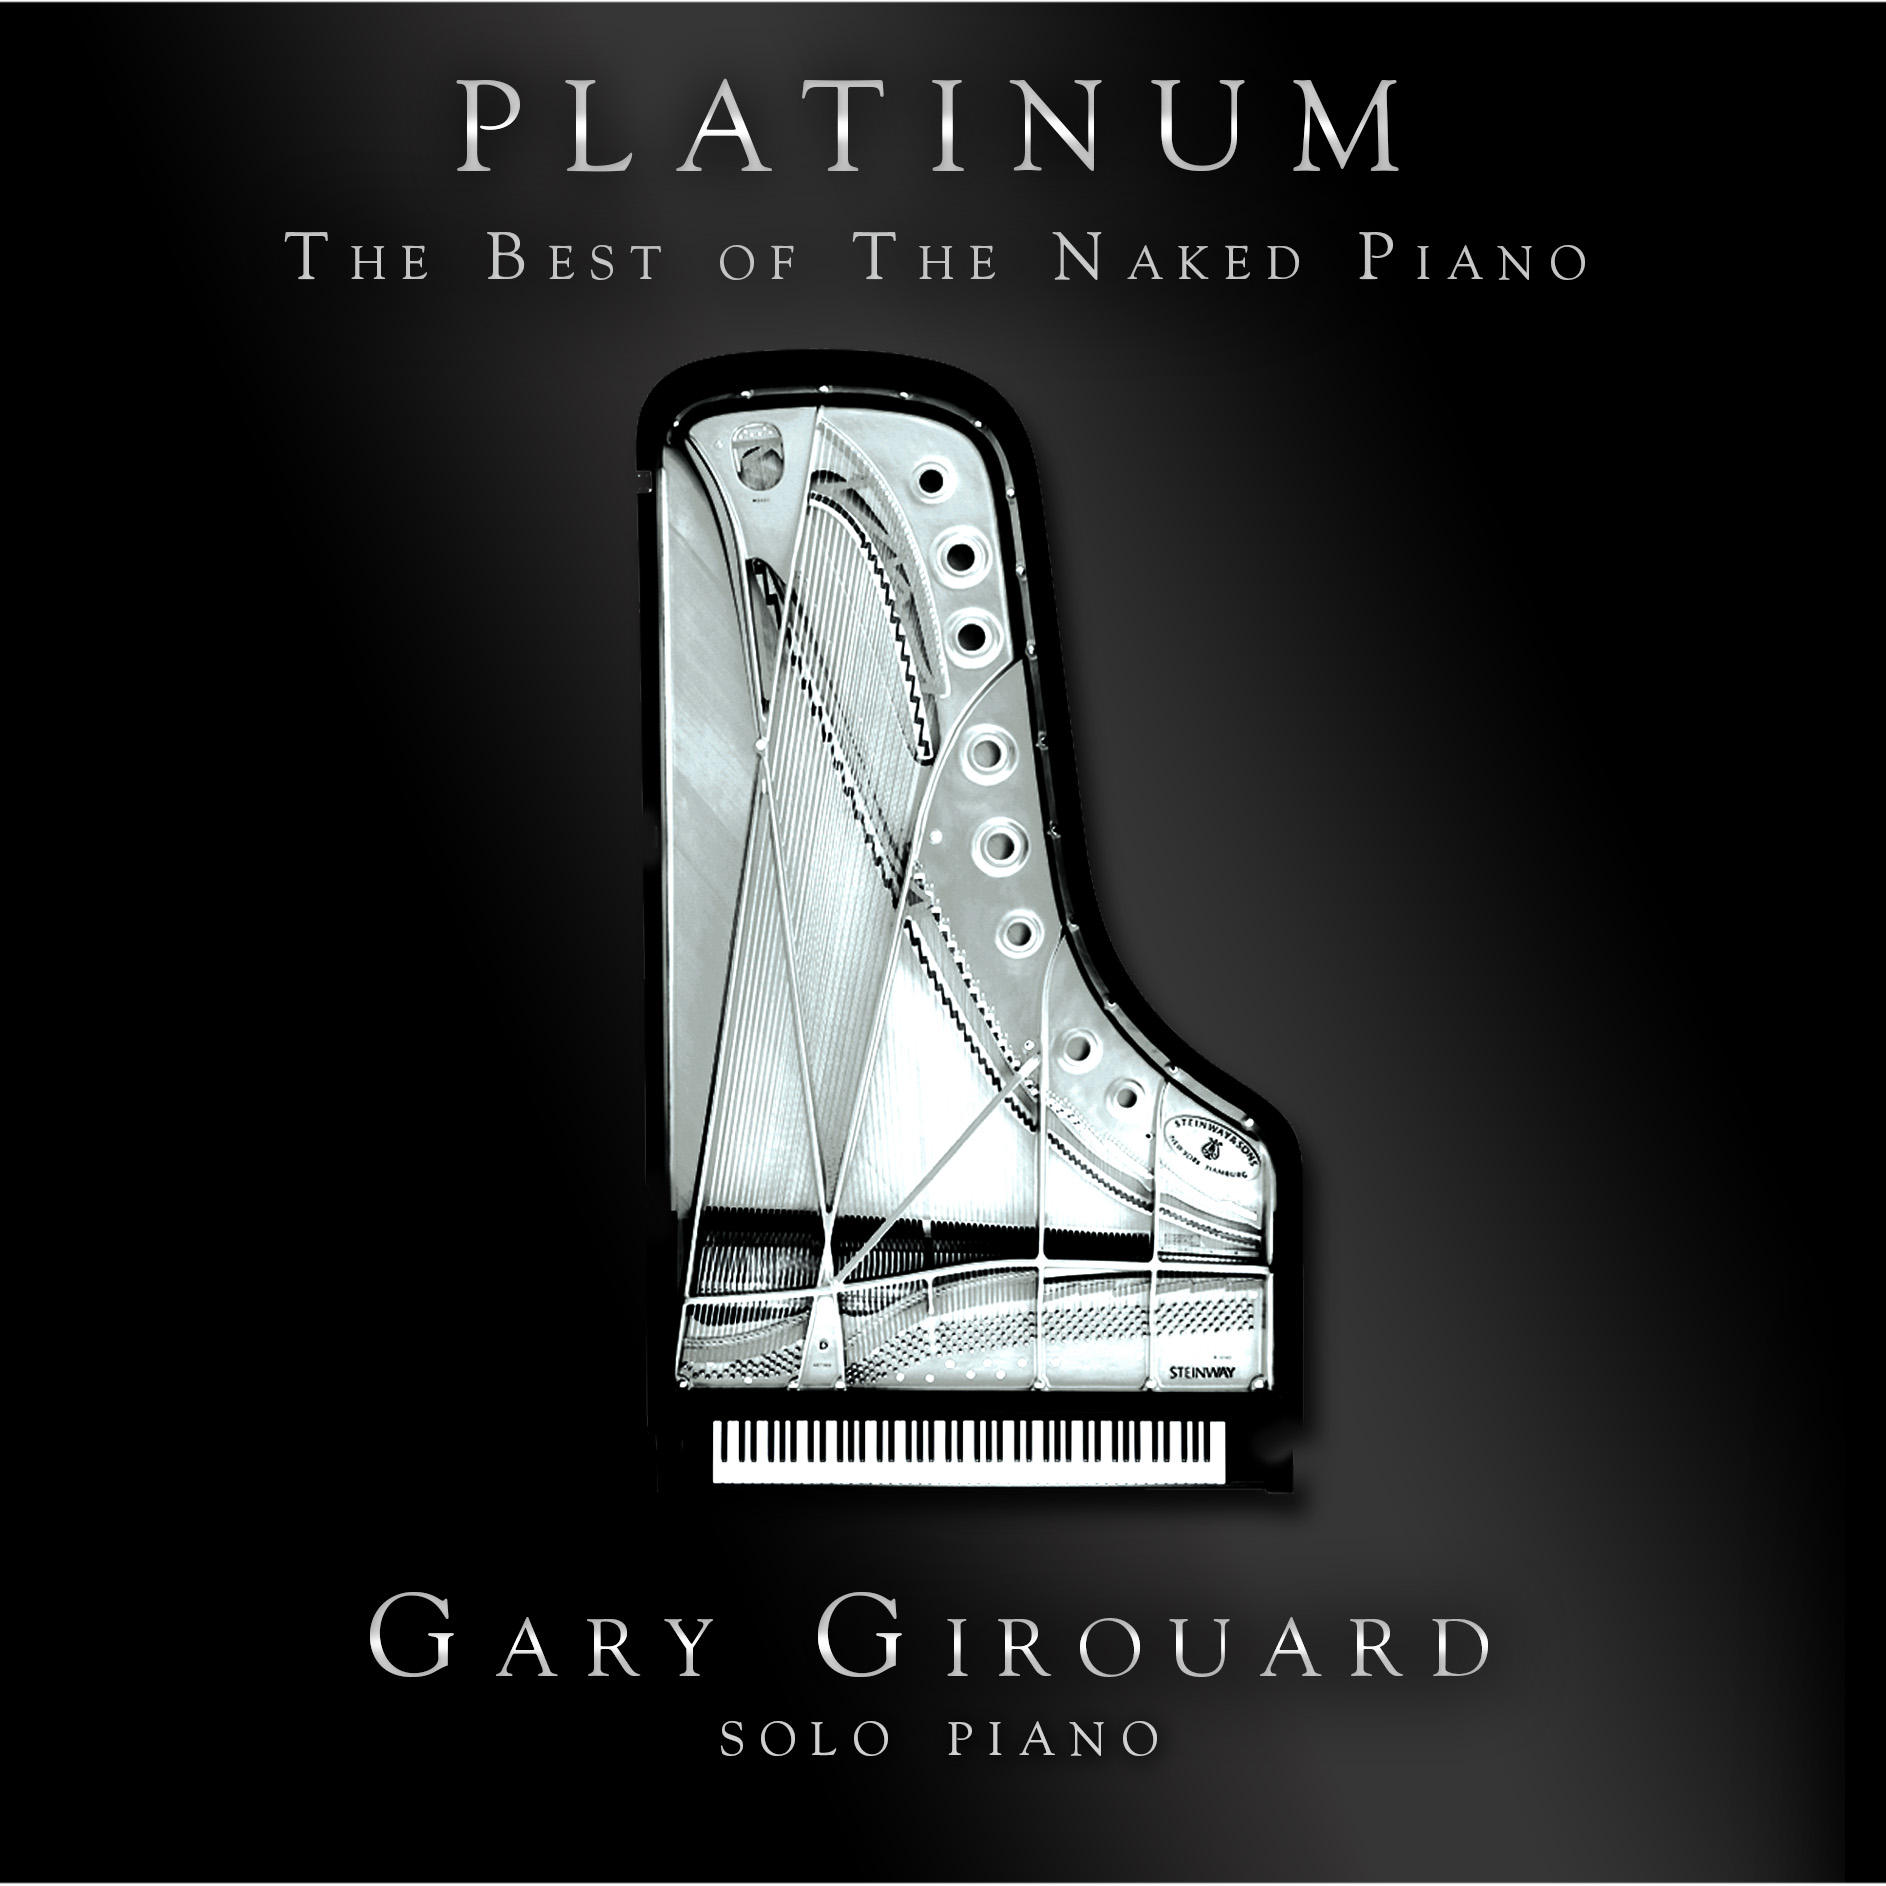 Platinum - The Best of The Naked Piano (Physical Songbook/Sheet Music -  Includes Physical copy + PDF)